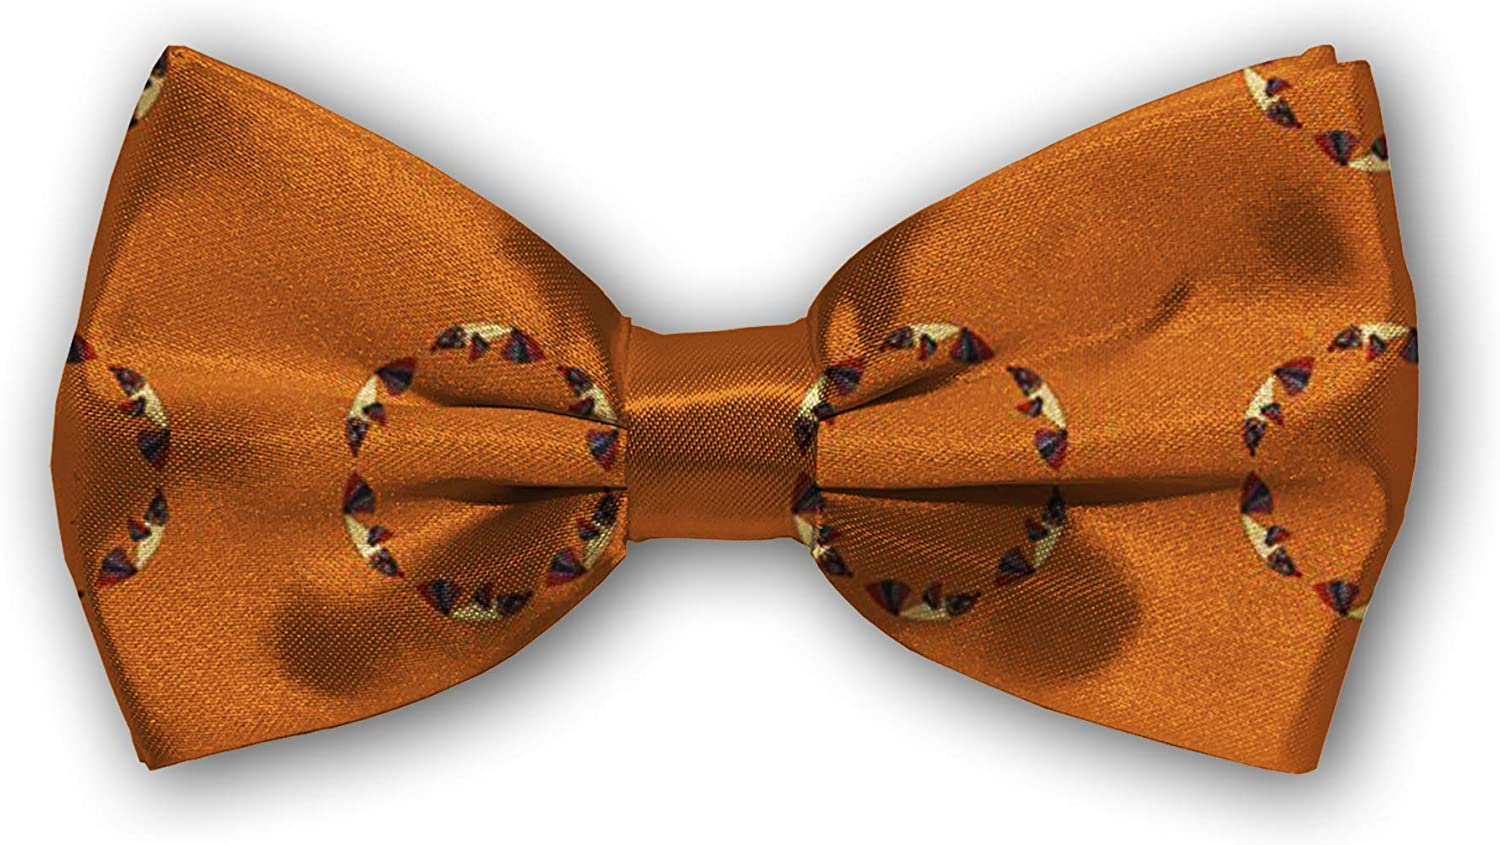 Bow Tie lowest price Tuxedo Butterfly Albuquerque Mall Cotton for Bowtie Boys Mens Adjustable